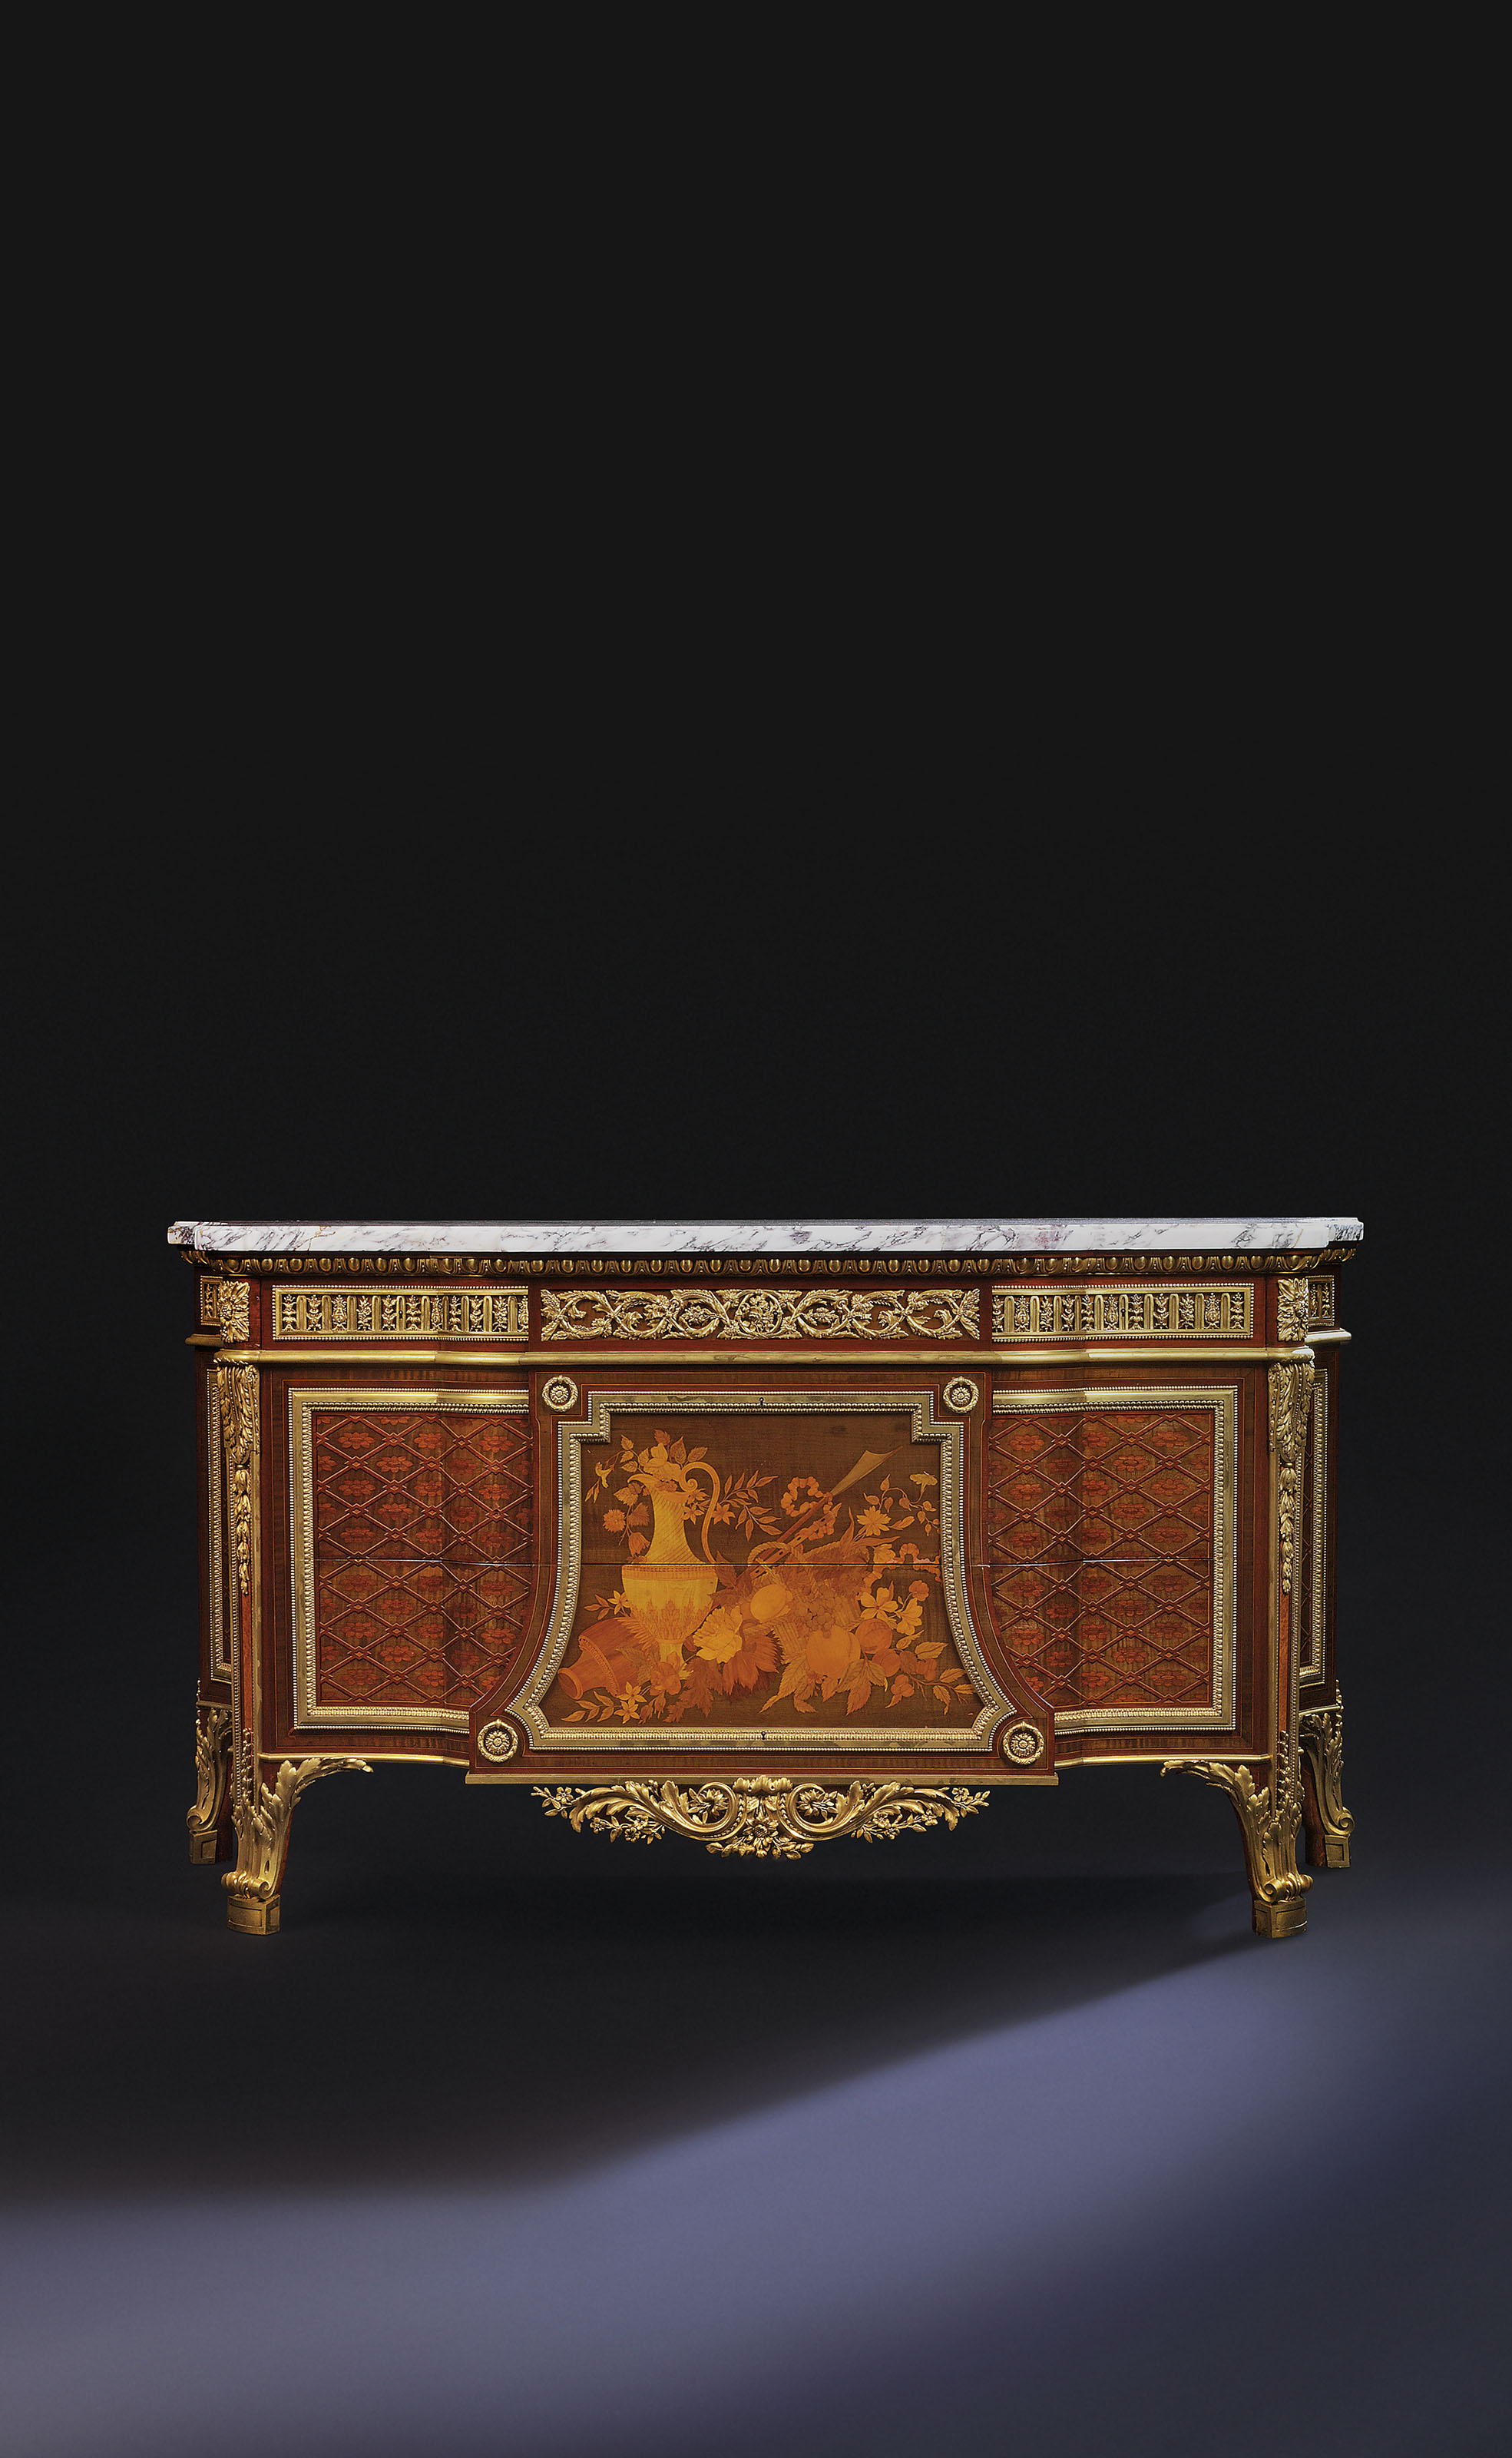 A FRENCH ORMOLU-MOUNTED MAHOGANY, HAREWOOD, BOIS CITRONNIER, AND BURR AMBOYNA MARQUETRY AND PARQUETRY COMMODE